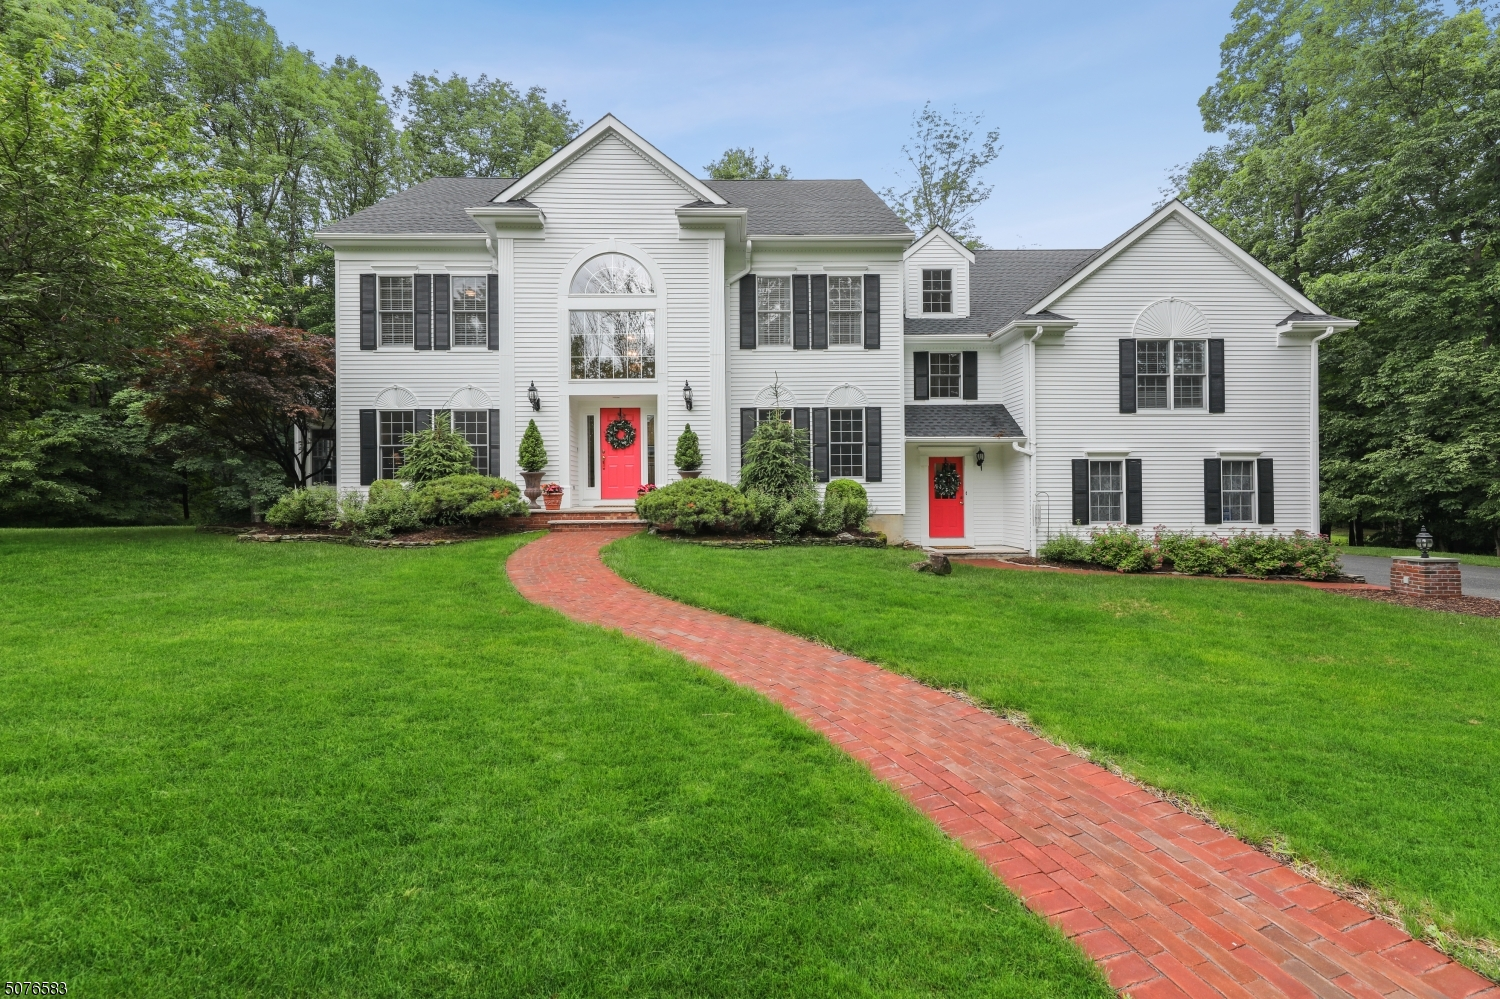 Gorgeous colonial located in a prime neighborhood with fabulous renovated kitchen and Primary Bath!  Light filled In-Law suite with full bath, fireplace in kitchen, family room and Primary bedroom. Located on a cul-de-sac, this property immediately lets you know your'e home.  The grand, yet welcoming two story foyer gives way to a professionally outfitted kitchen with fireplace. Open to the kitchen, the family room with fireplace, vaulted ceiling sunroom, expansive dining and living rooms offer endless entertaining spaces.  The primary suite with fireplace, sitting room, double walk in closets and on trend spa bath provide a sanctuary.  In-law suite with full bath, two additional bedrooms, an office and full bath round out the 2nd level.  Walk out lower level provides a third floor of perfect living spaces!